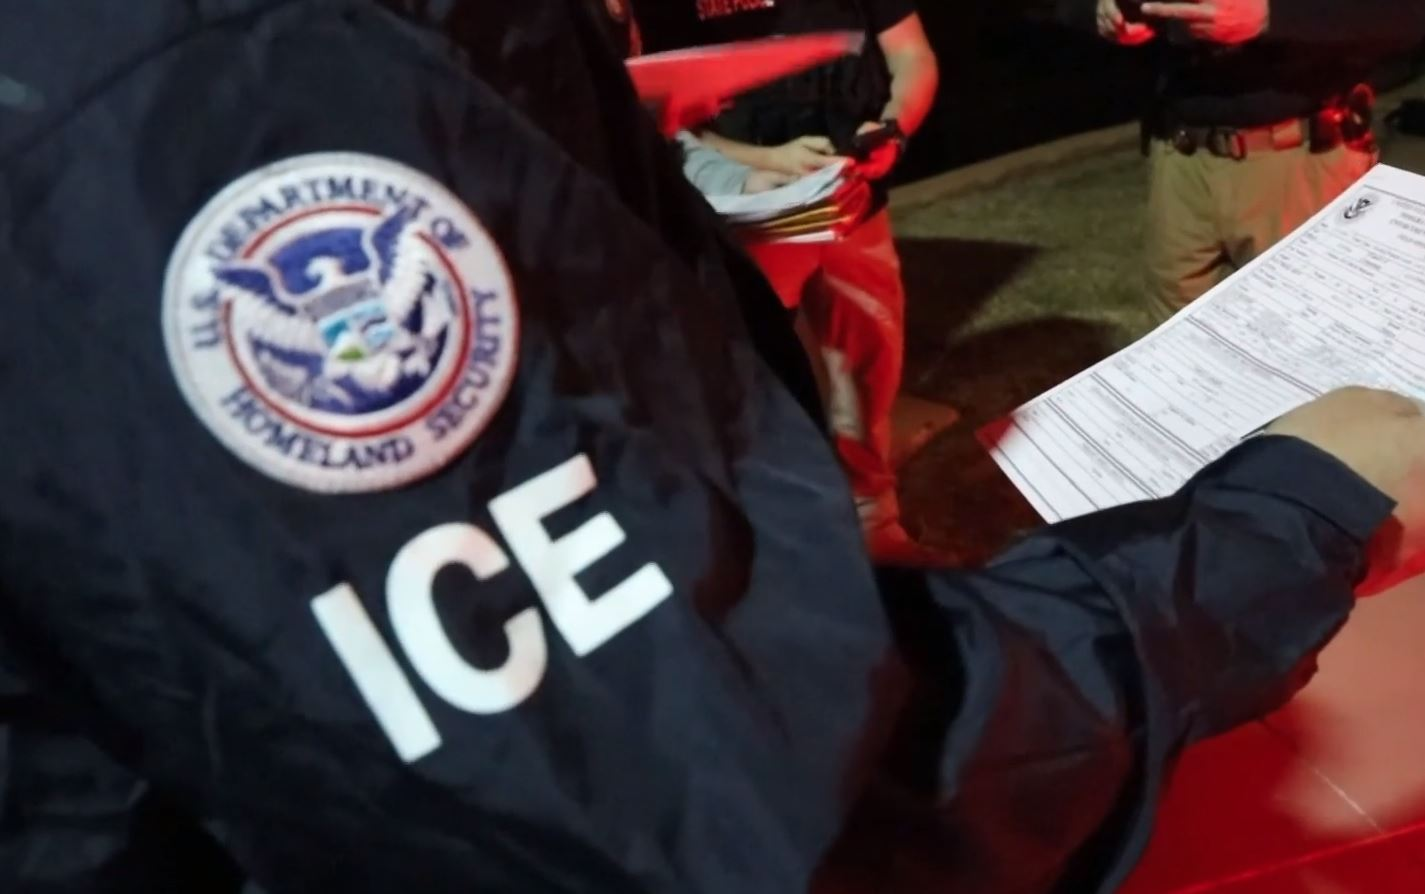 98 people arrested, including 49 in North Texas, in immigration bust